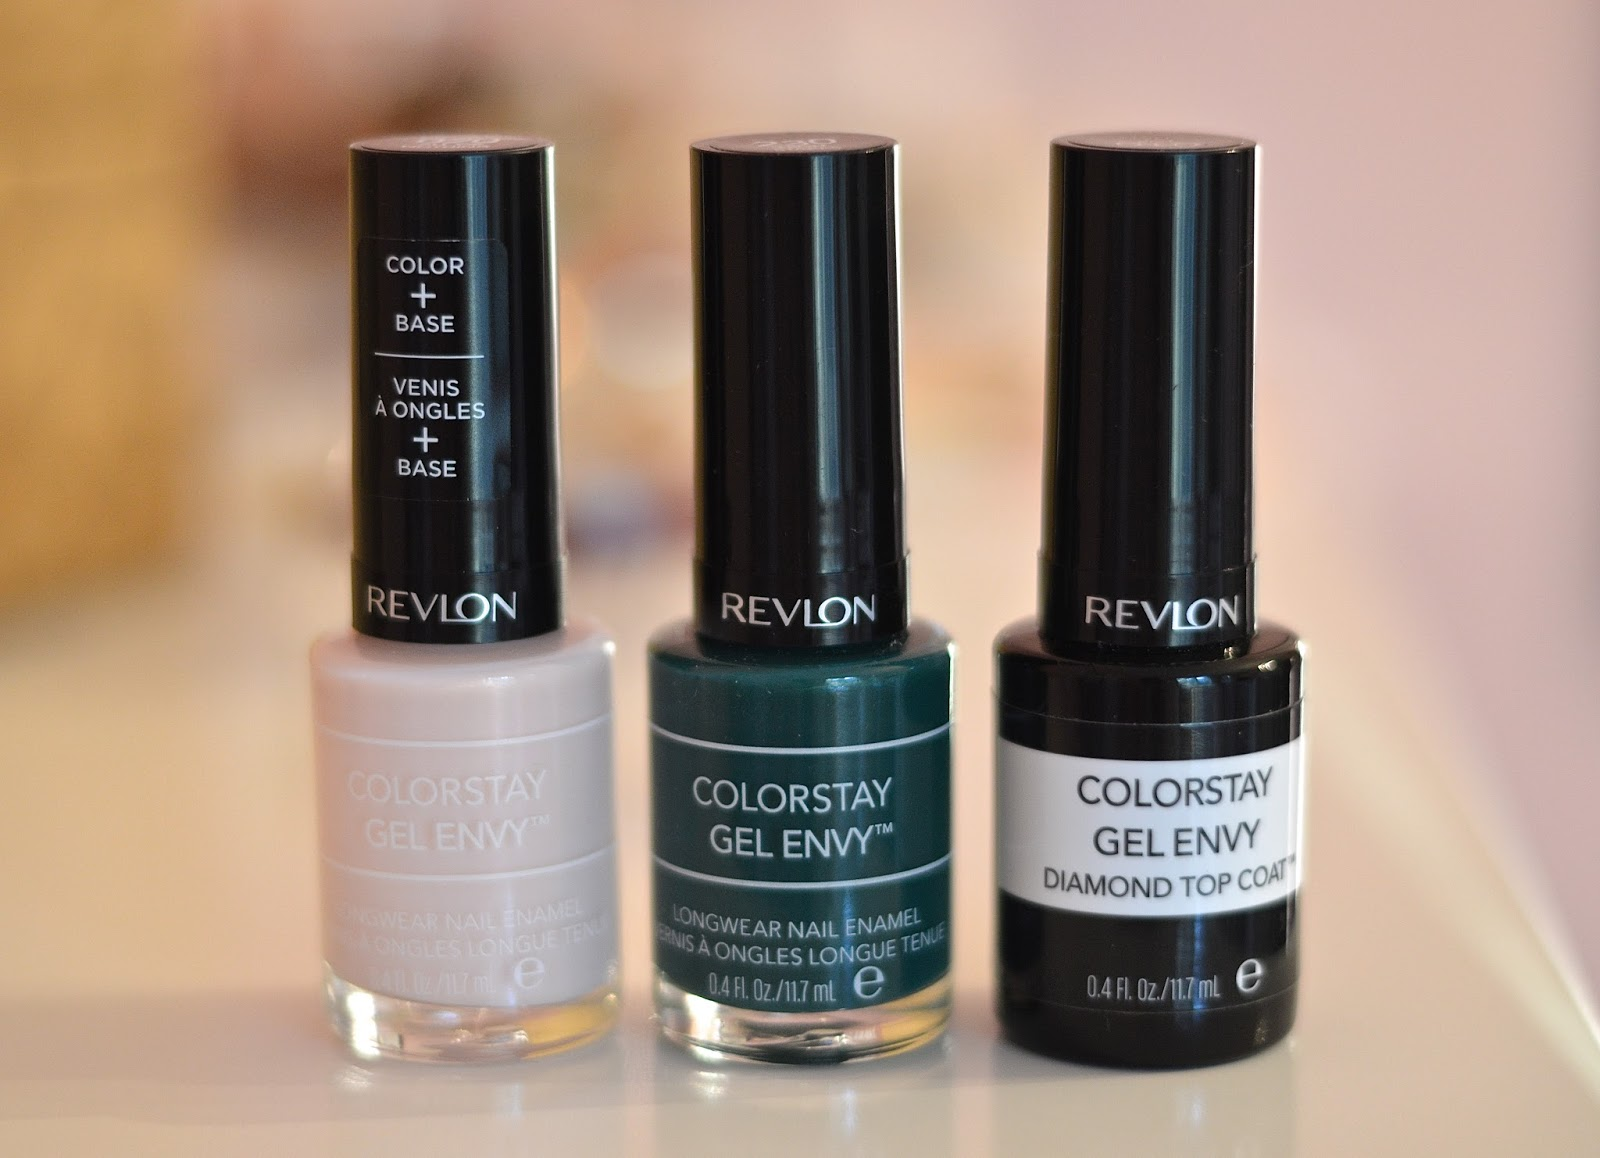 Review: Revlon Colorstay Gel Envy Nail Polish | Classically Contemporary